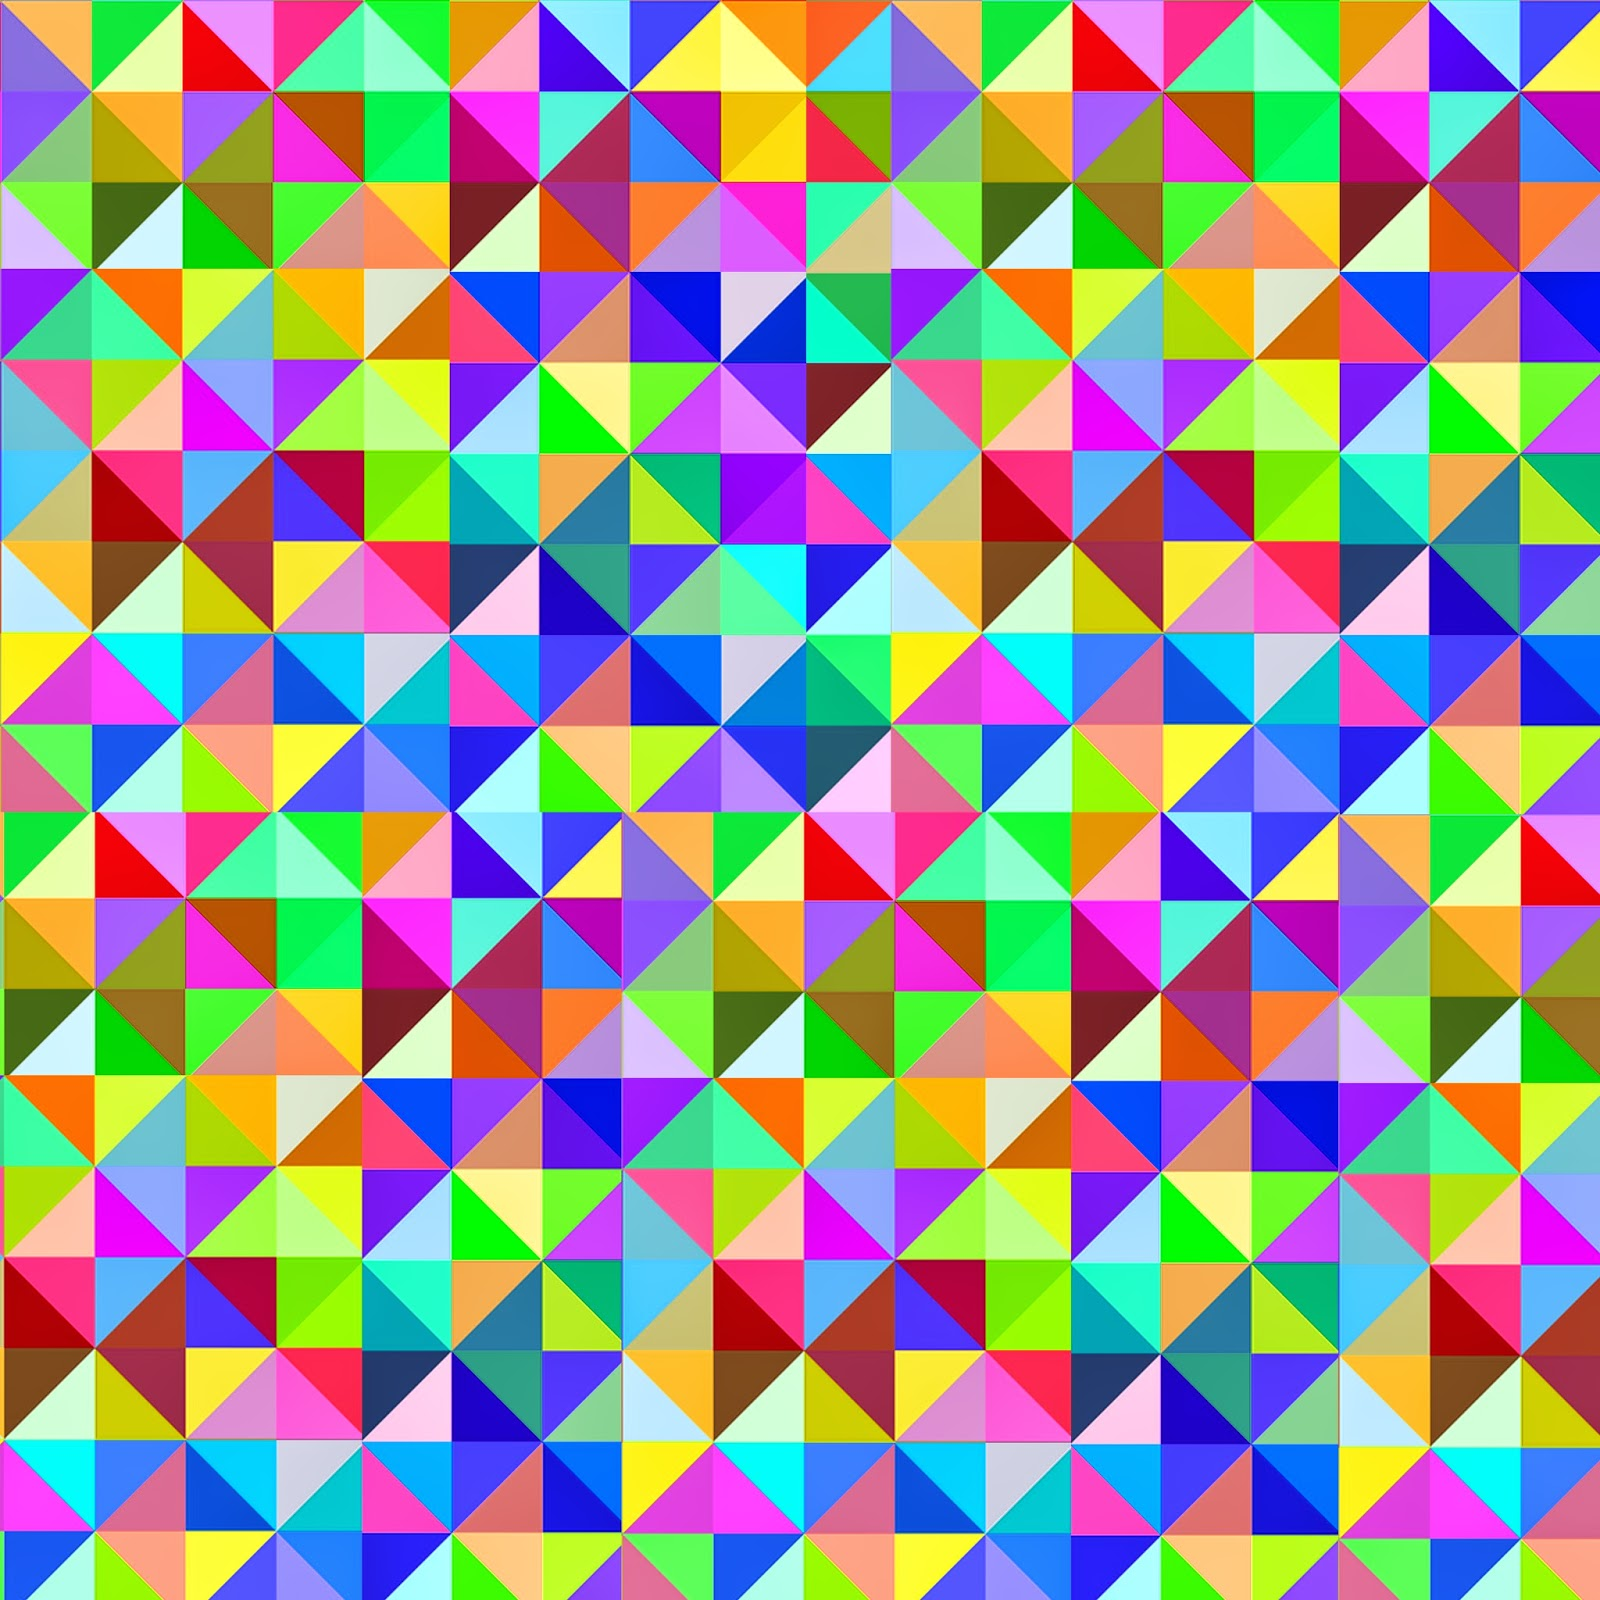 Gigantic Geometric Colorful Triangle FREEBIES Printables!